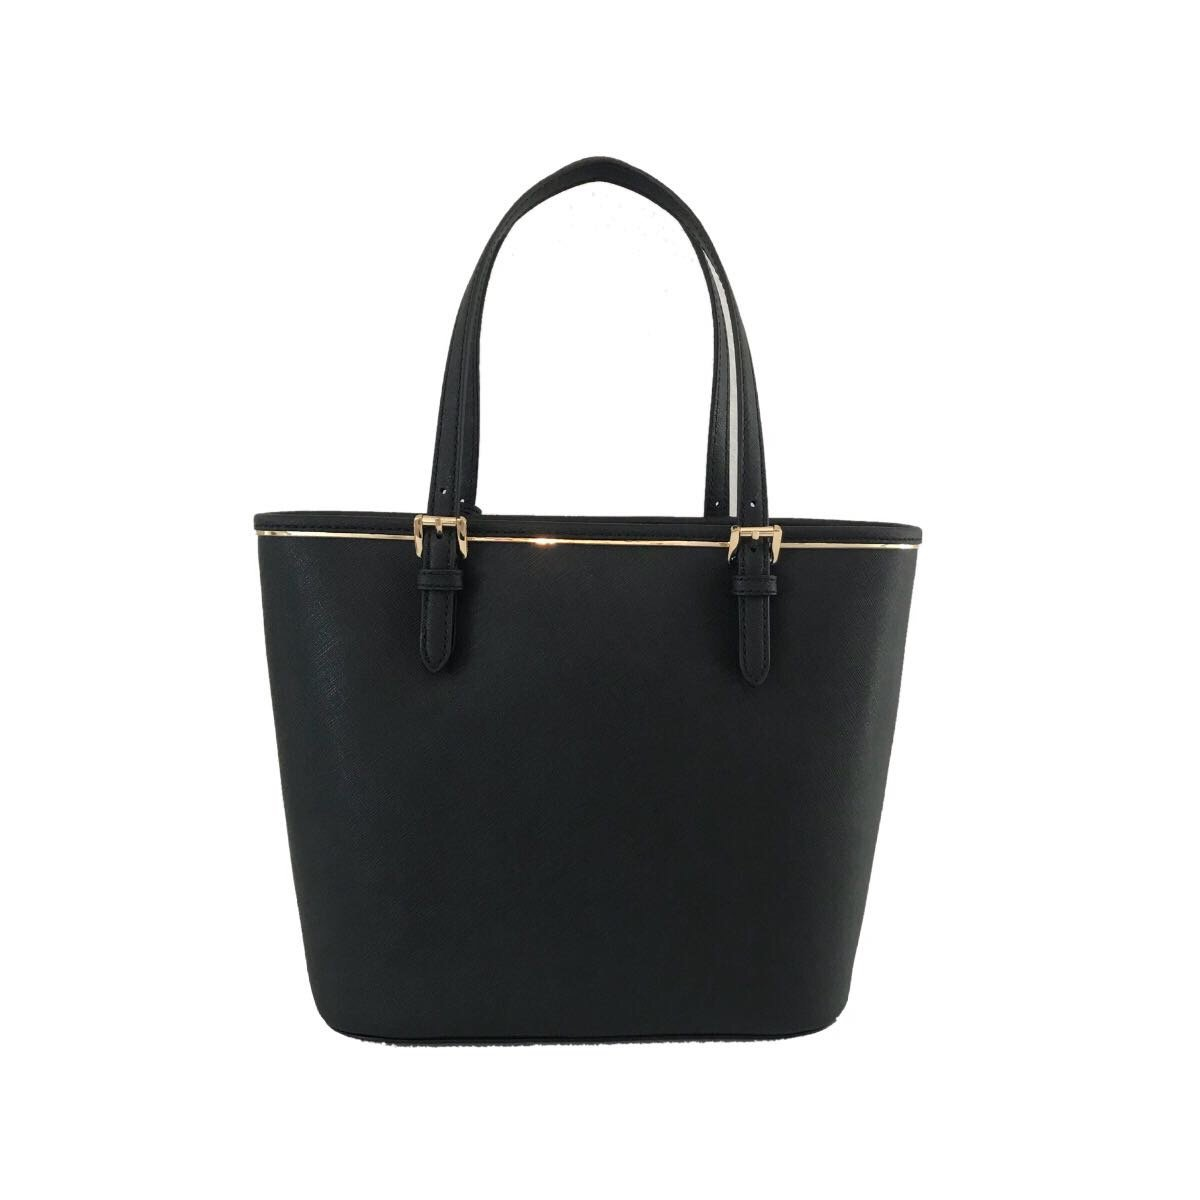 Michael Kors Saffiano Frame MD PKT MF Tote Black Leather by Michael Kors (Image #3)